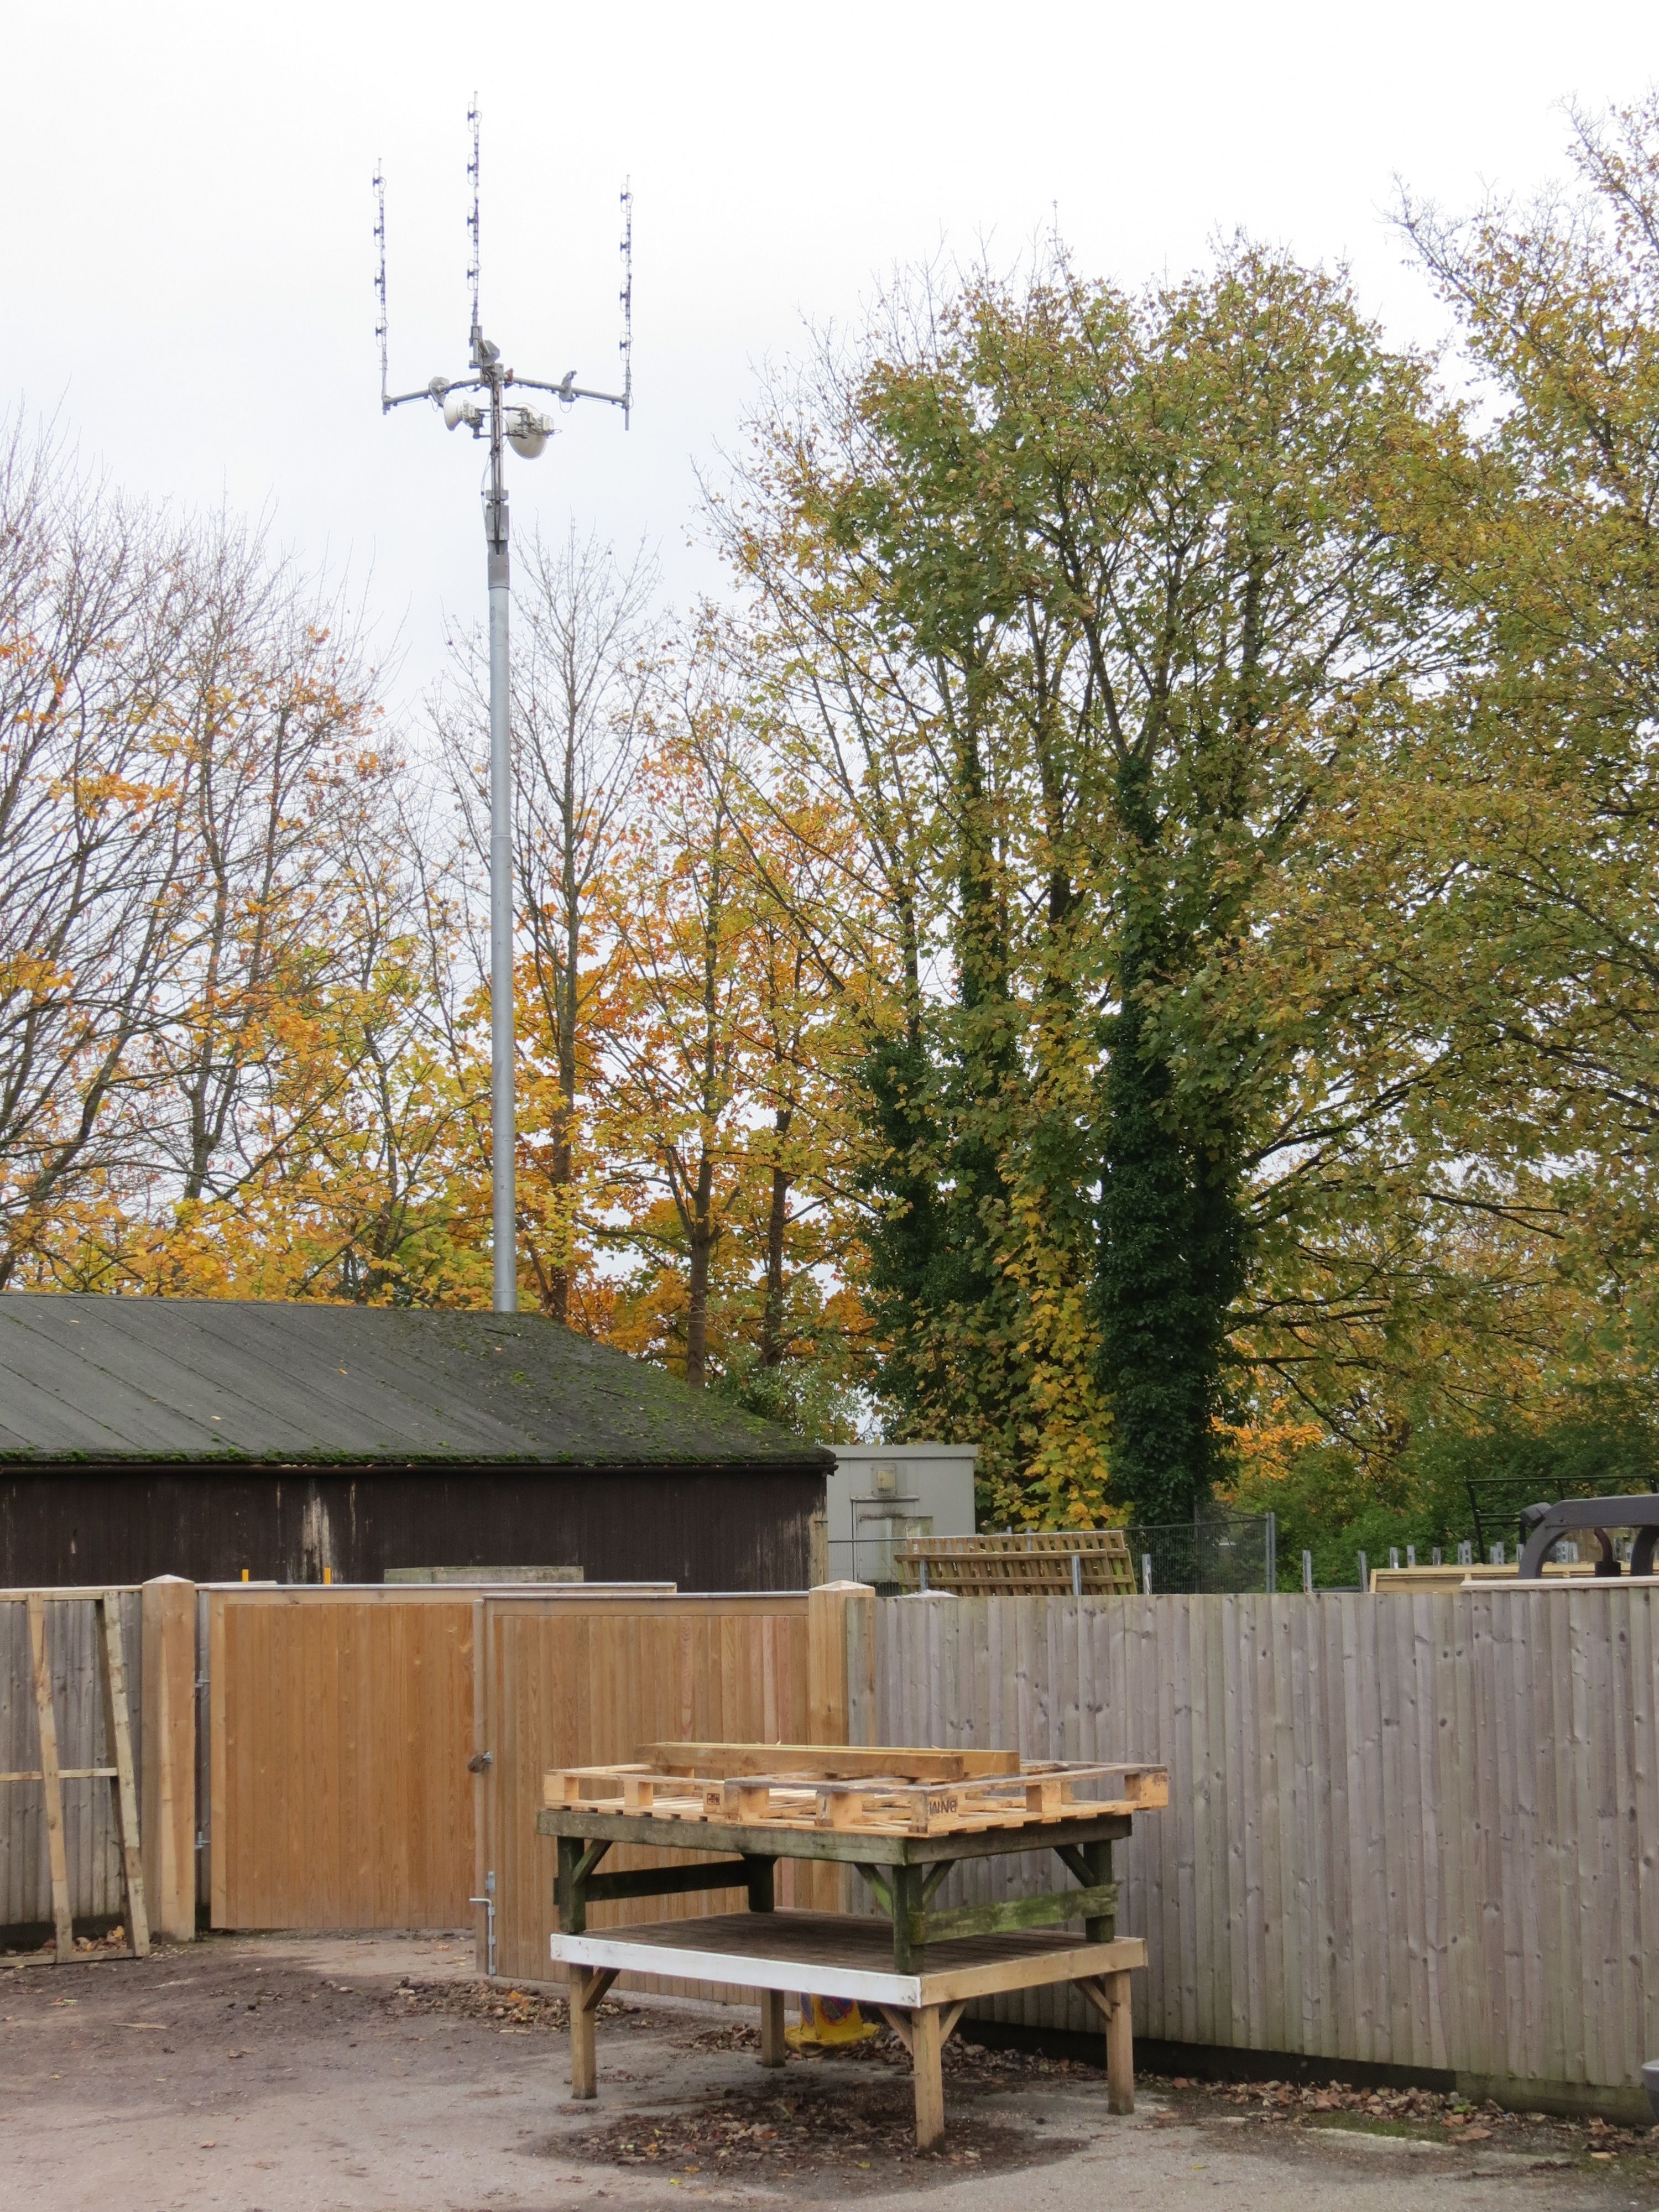 Base station 1: This is an Airwave radio antenna one of the